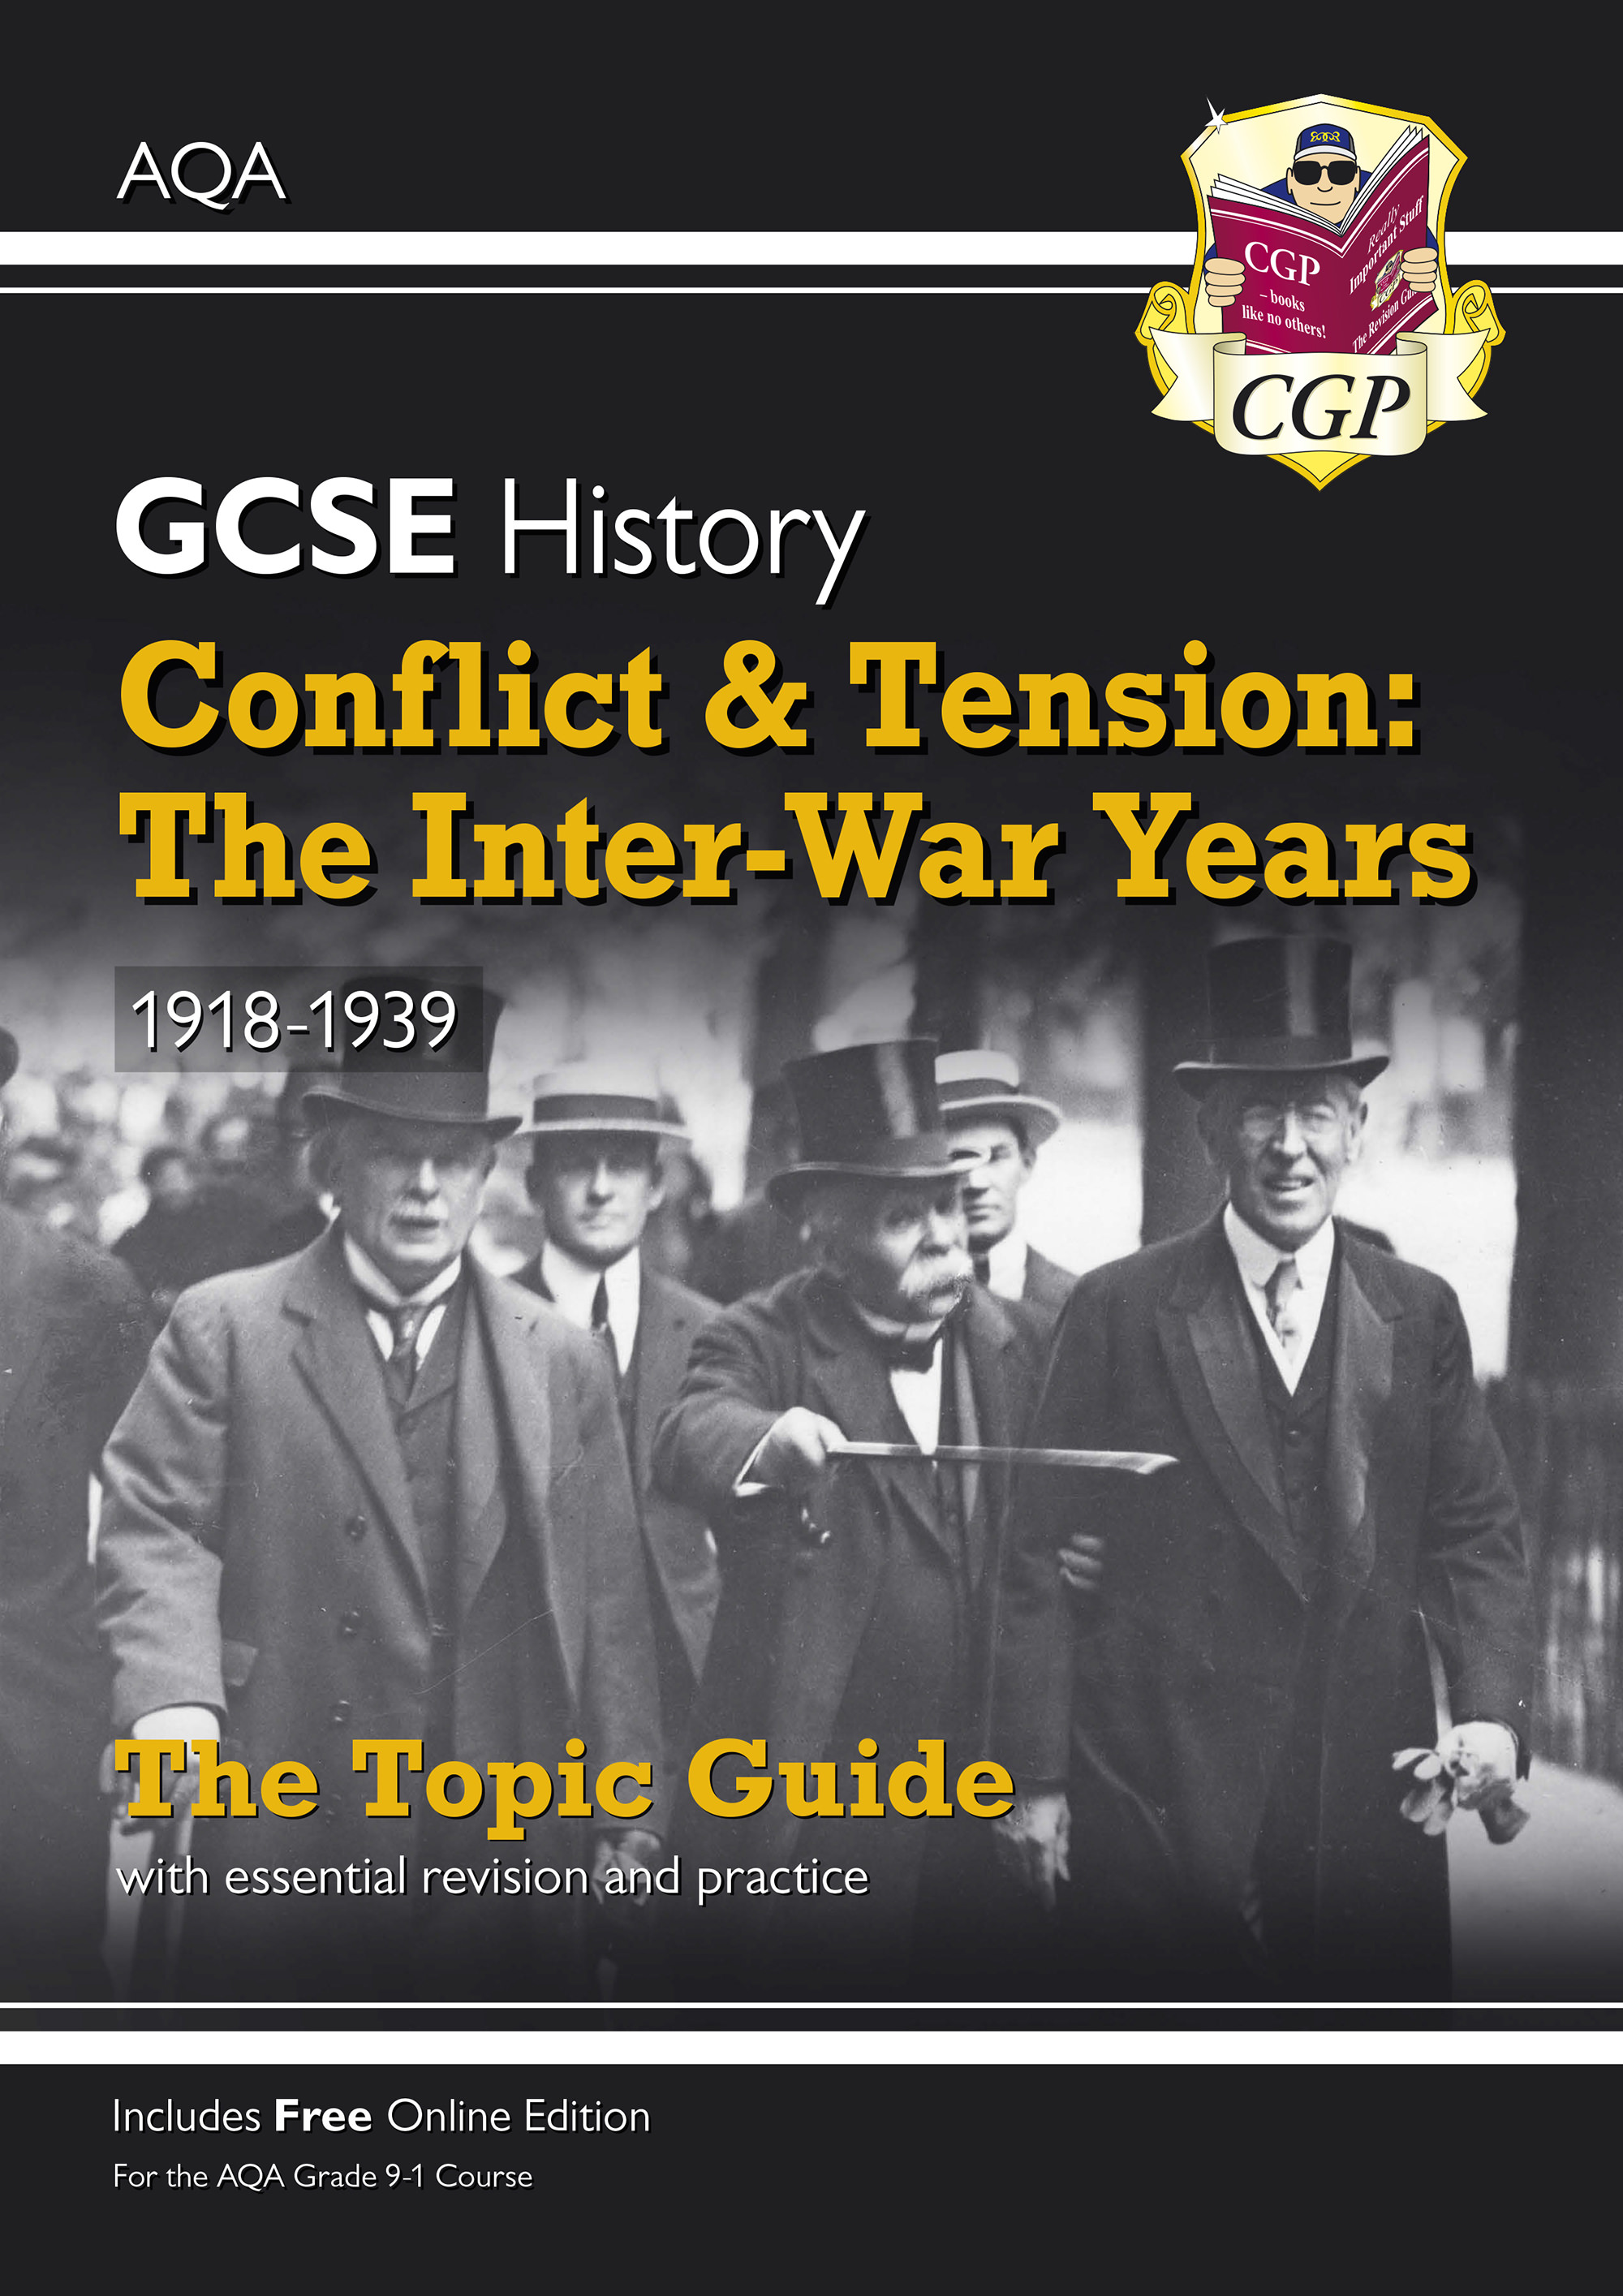 HACTO41DK - Grade 9-1 GCSE History AQA Topic Guide - Conflict and Tension: The Inter-War Years, 1918